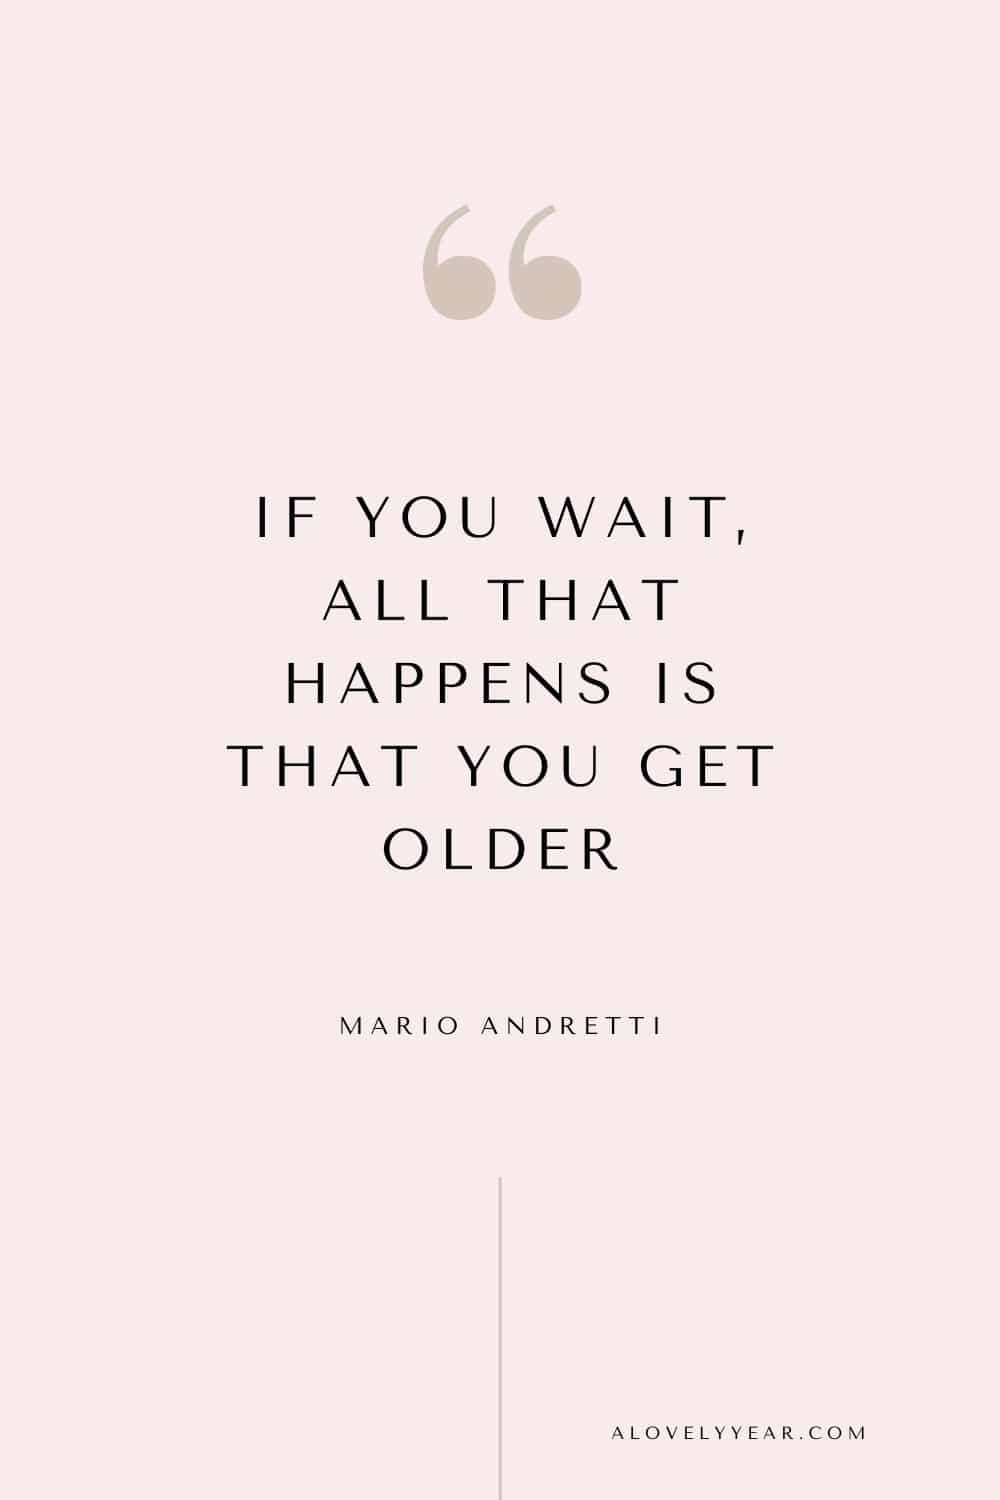 Get things done quote - If you wait, all that happens is that you get older. - Mario Andretti